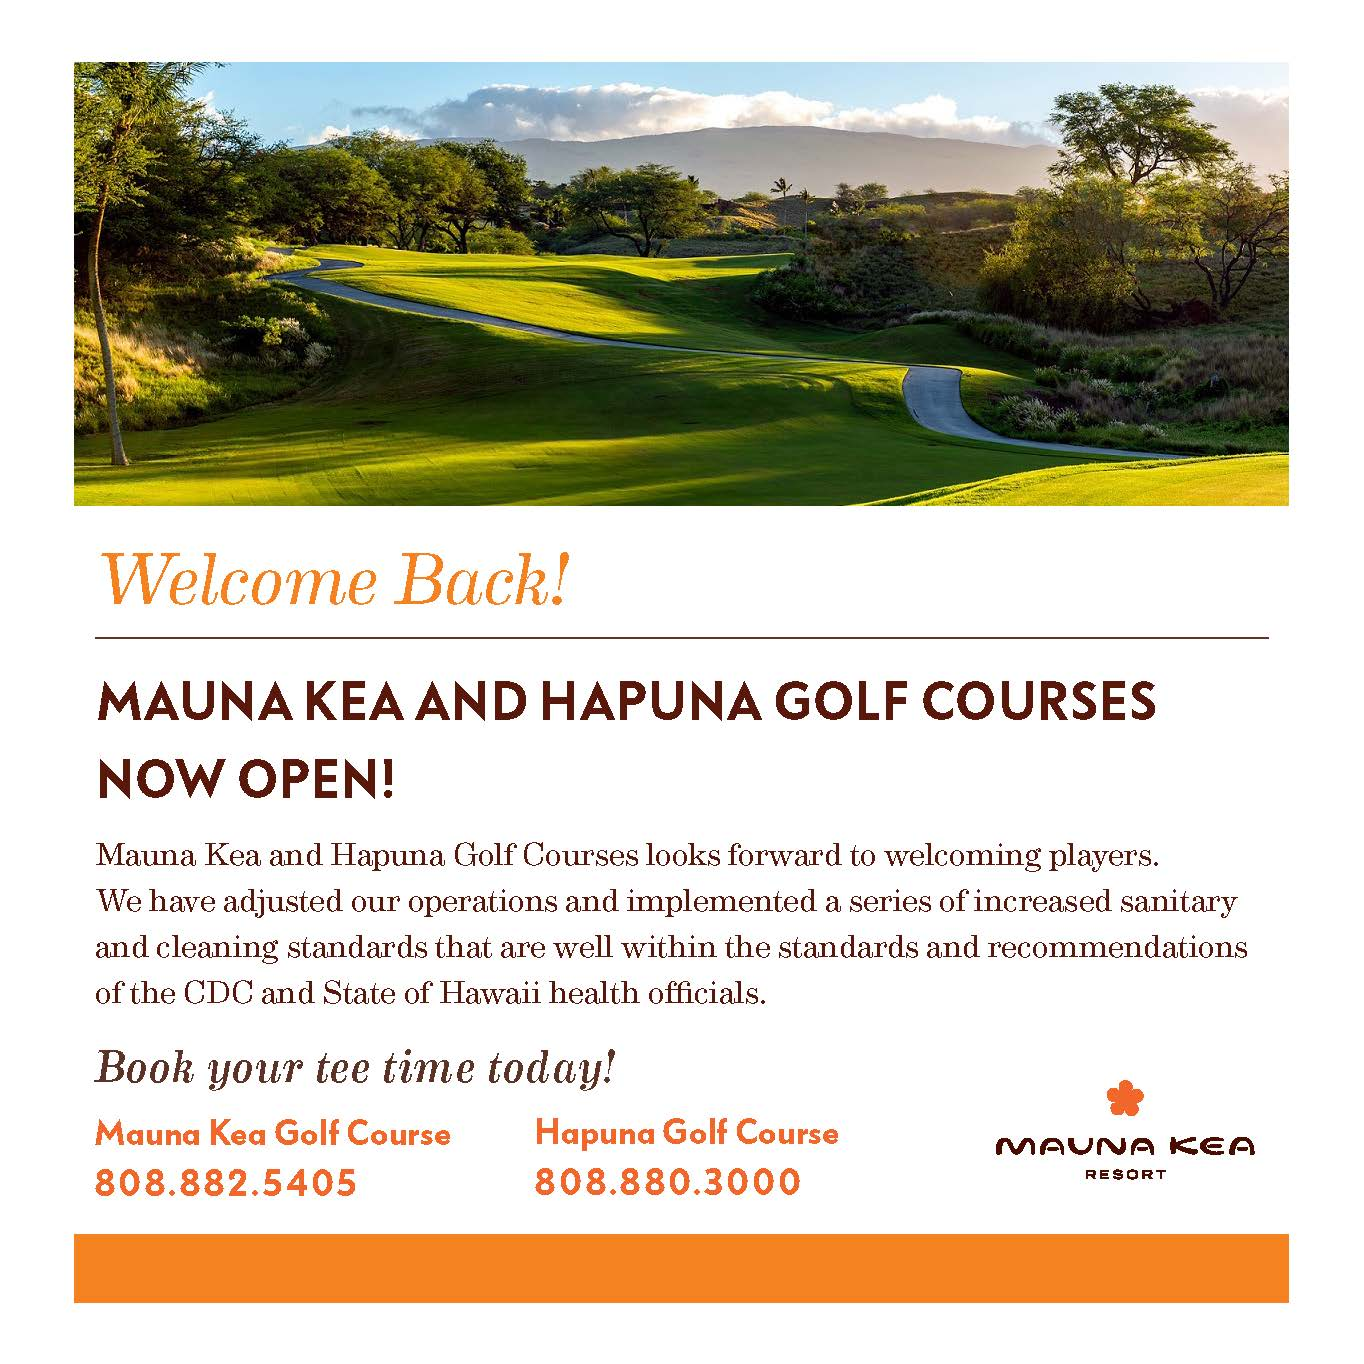 Mauna-Kea-650x650-KKCC-Member-Marketplace-JUNE-2020---Golf-Reopening.jpg